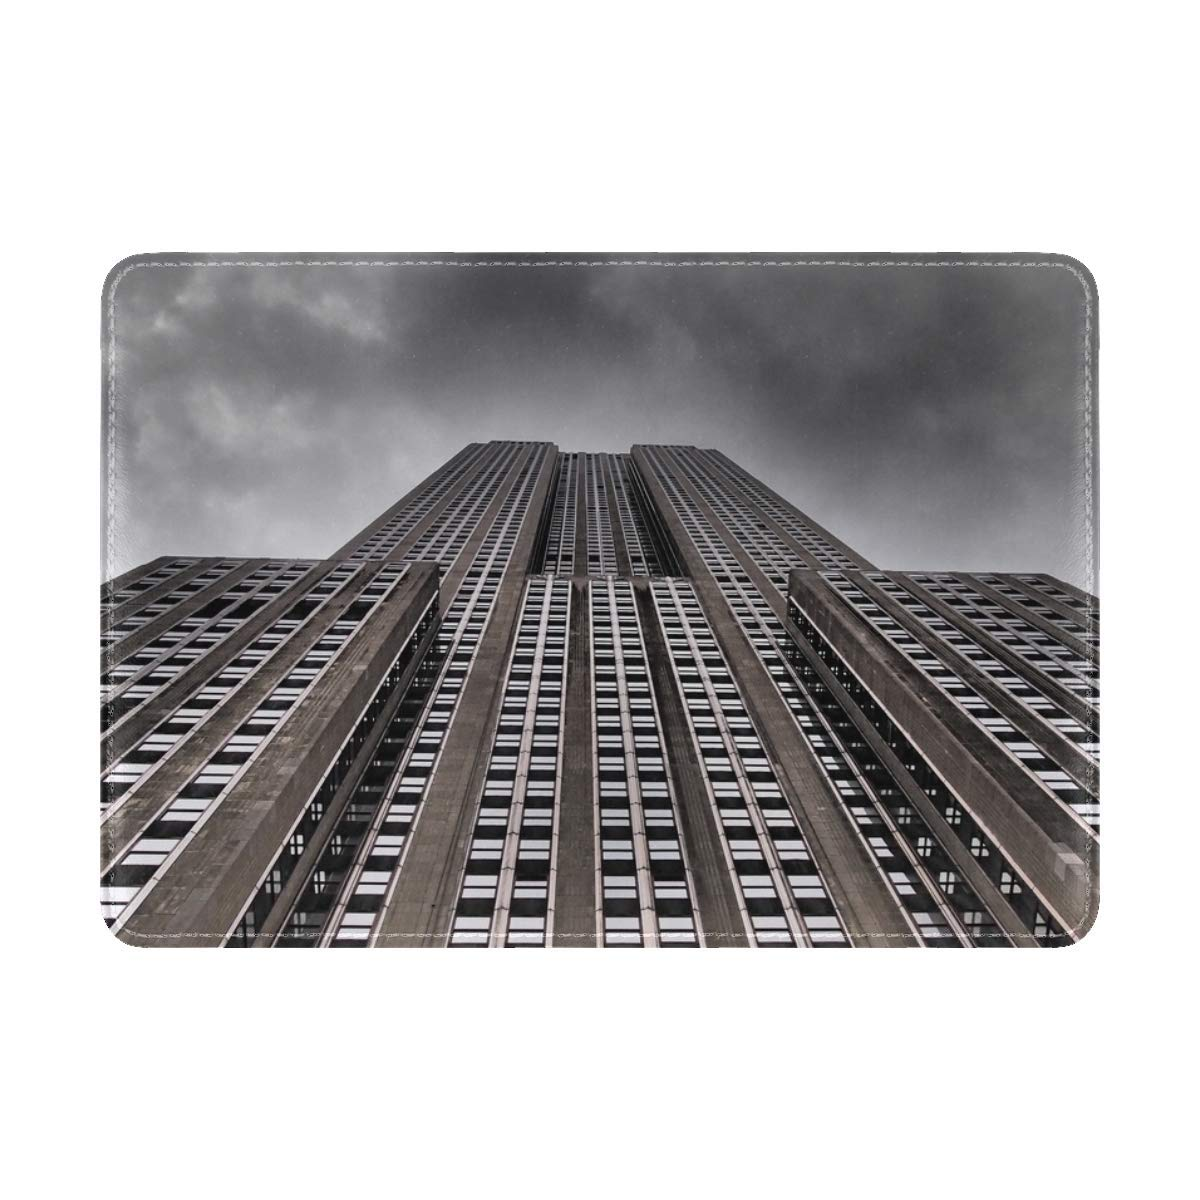 Skyscraper New York City Empire State Building Leather Passport Holder Cover Case Travel One Pocket